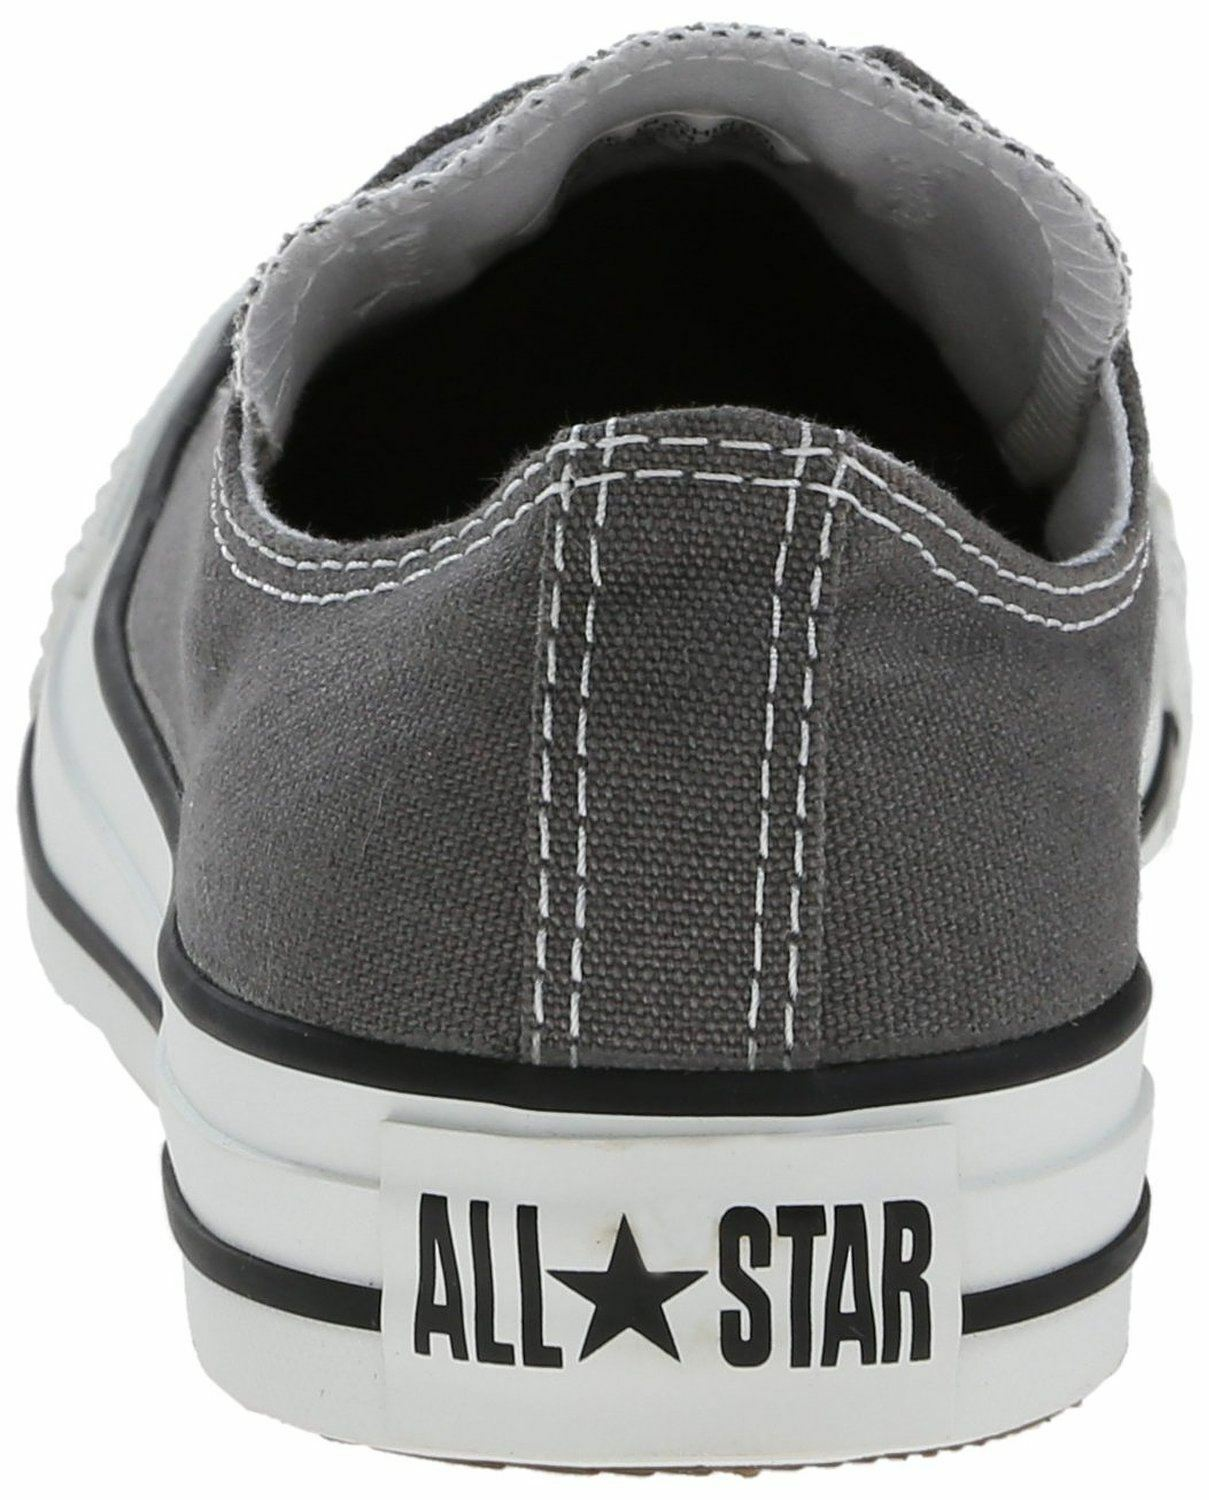 Converse Chuck Taylor All Star White Charcoal White Star Ox Lo Unisex Trainers Shoes 9a08b9